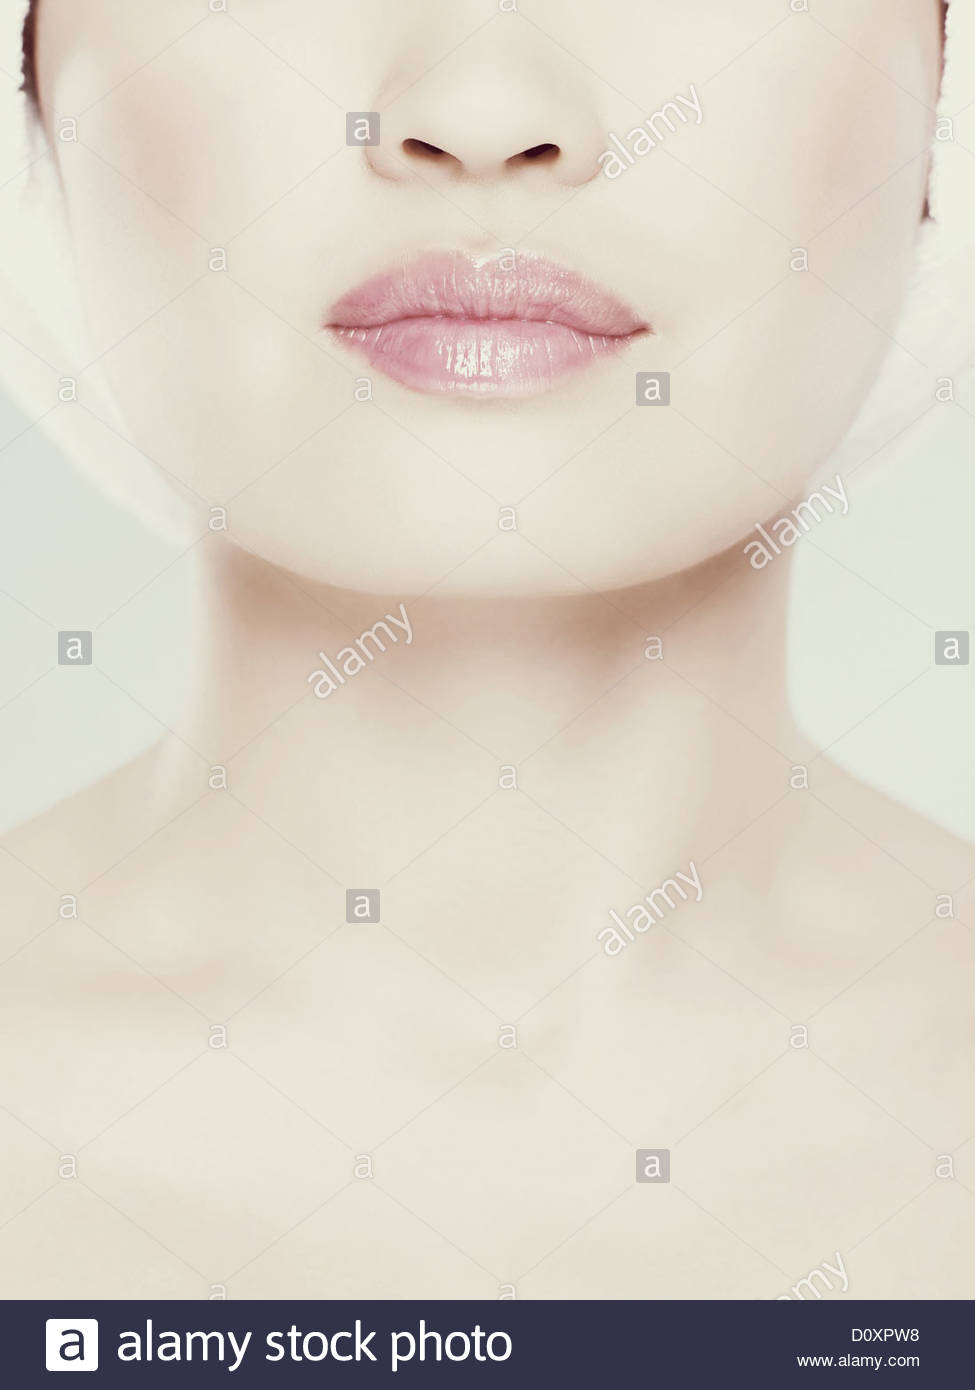 Images recadrées de womans face, Close up Photo Stock